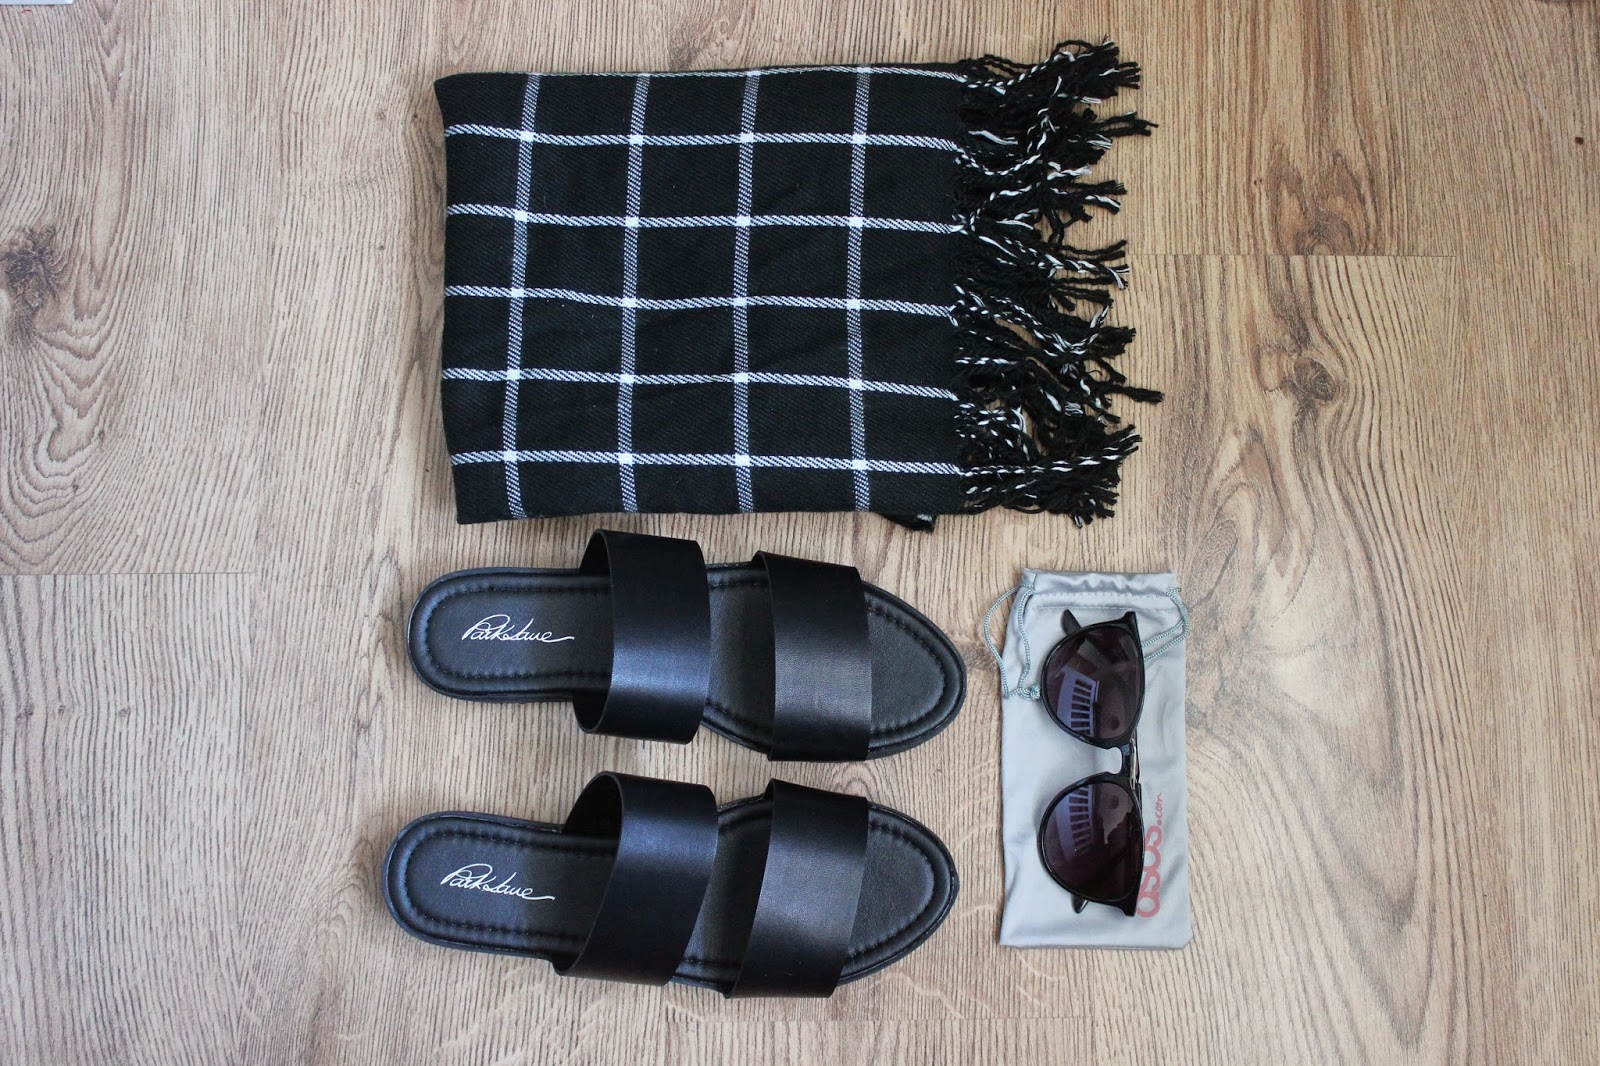 MONOCHROME FASHION - Primark Scarf/ Park Lane Sandals